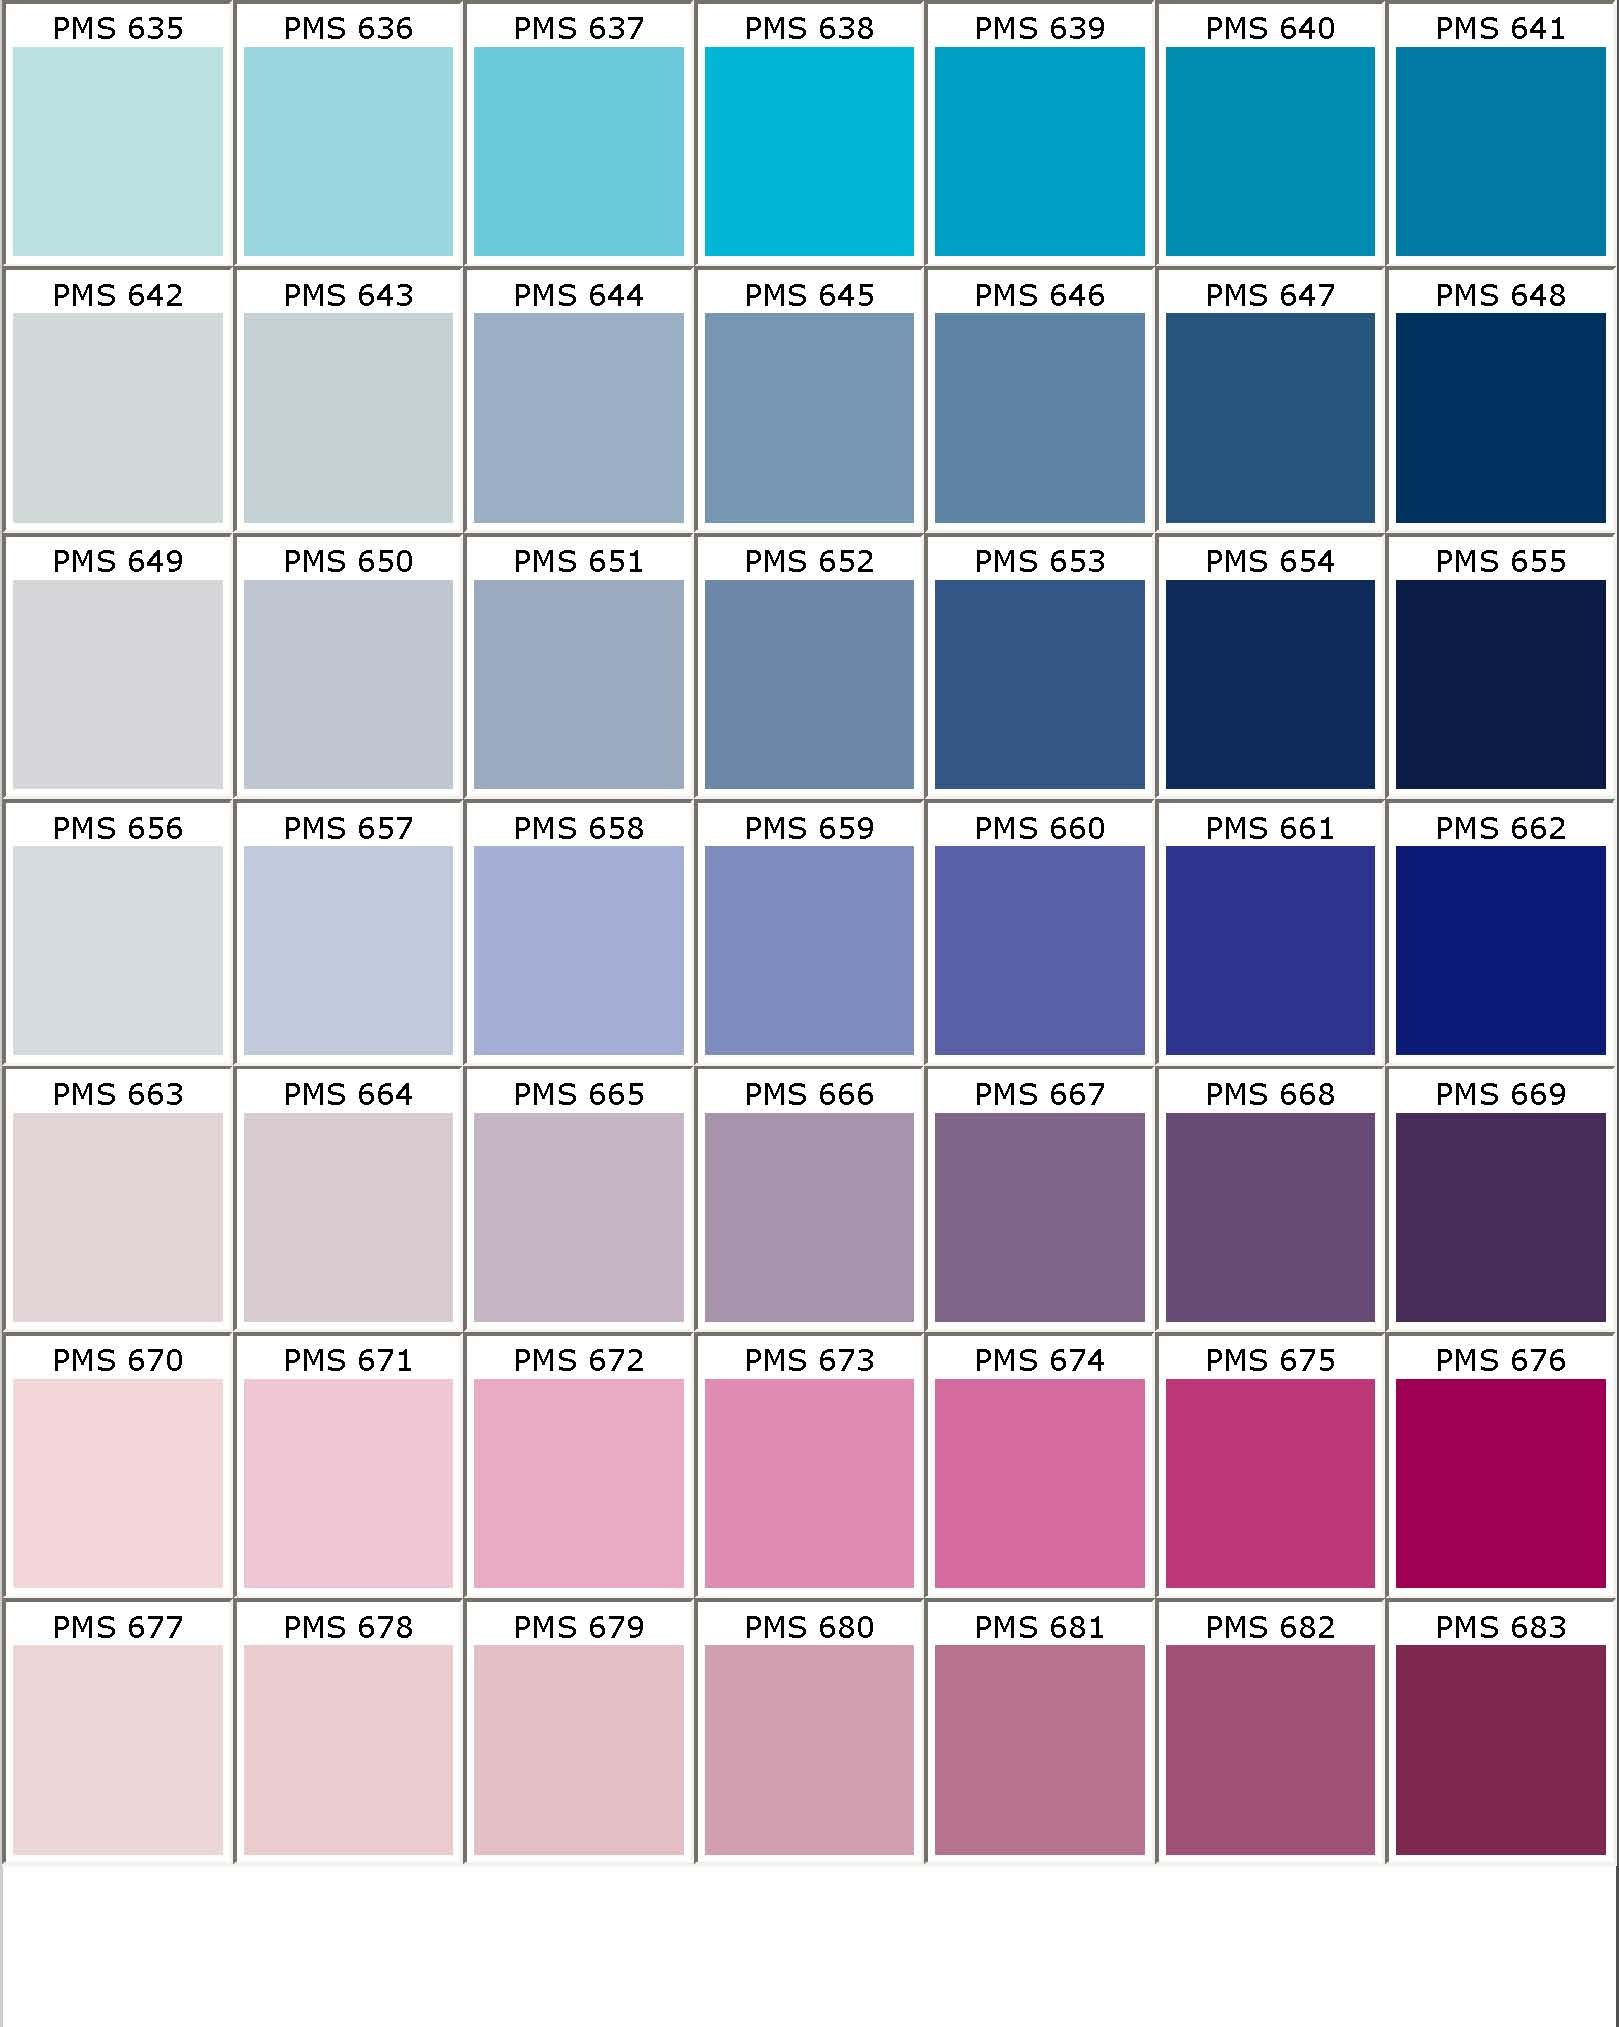 Color chart jm trading pvt ltd blue pink yellow and white color chart jm trading pvt ltd nvjuhfo Gallery